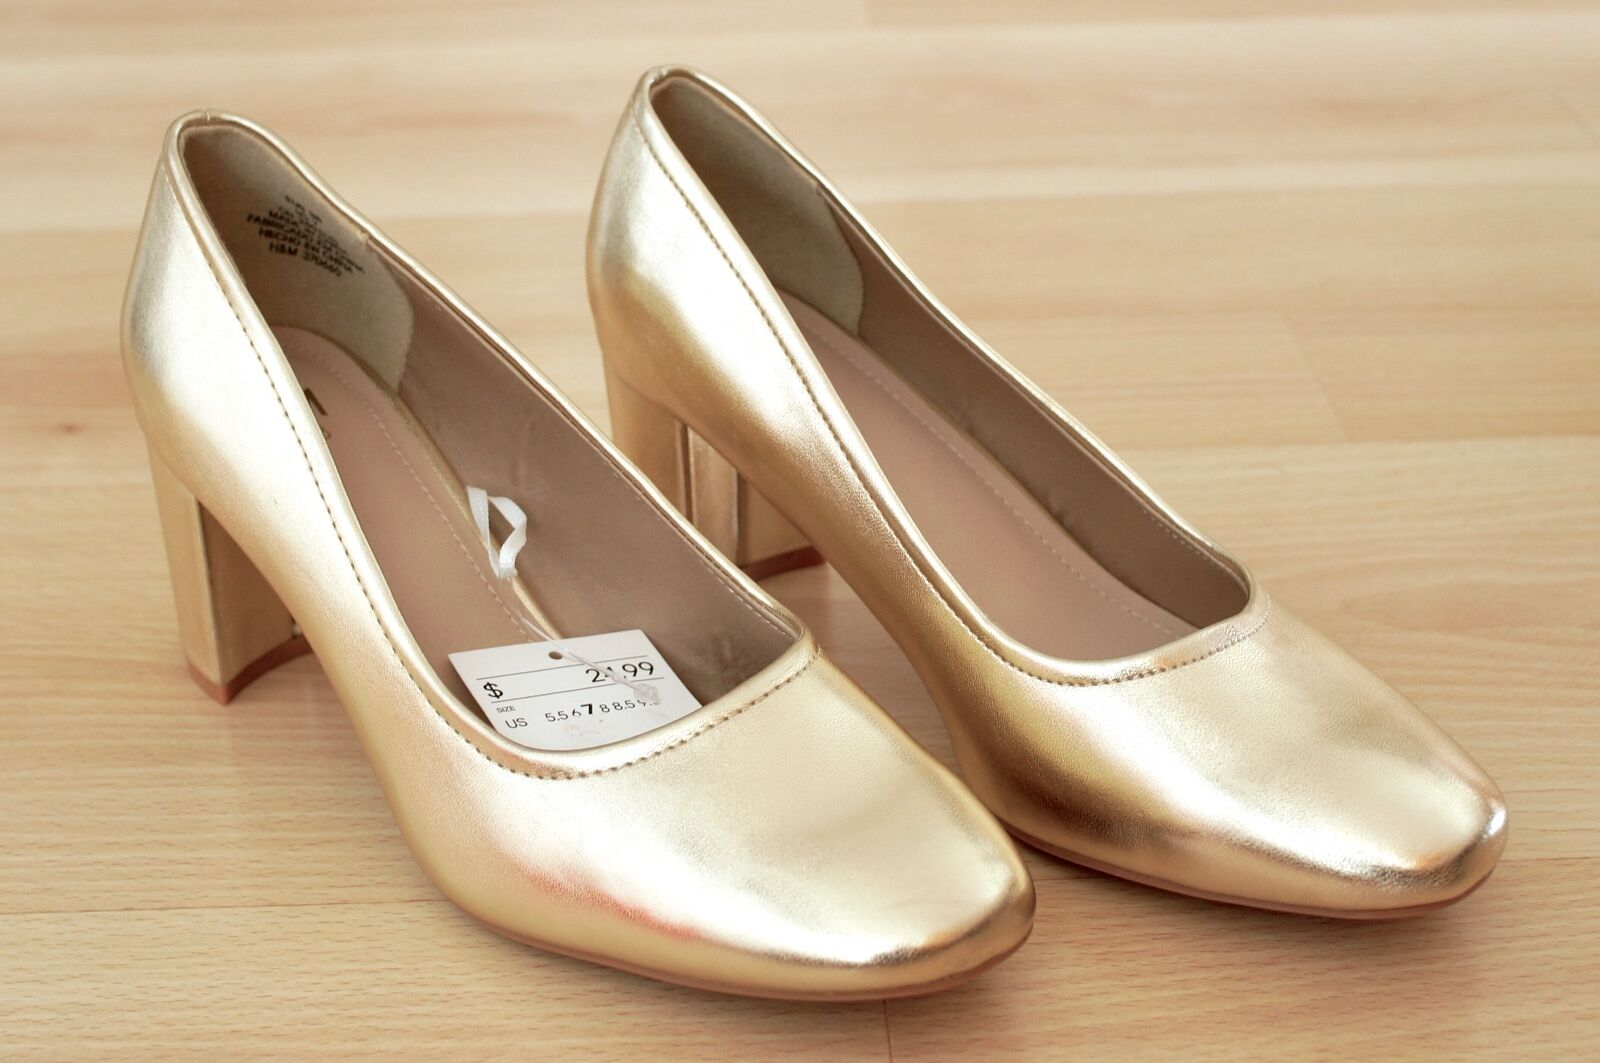 NEW H&M FAUX LEATHER GOLDEN CLASSIC PUMPS ROUND GOLD TIP 9.5 HIGH HEELS GOLD ROUND SHOES HM 24ba74